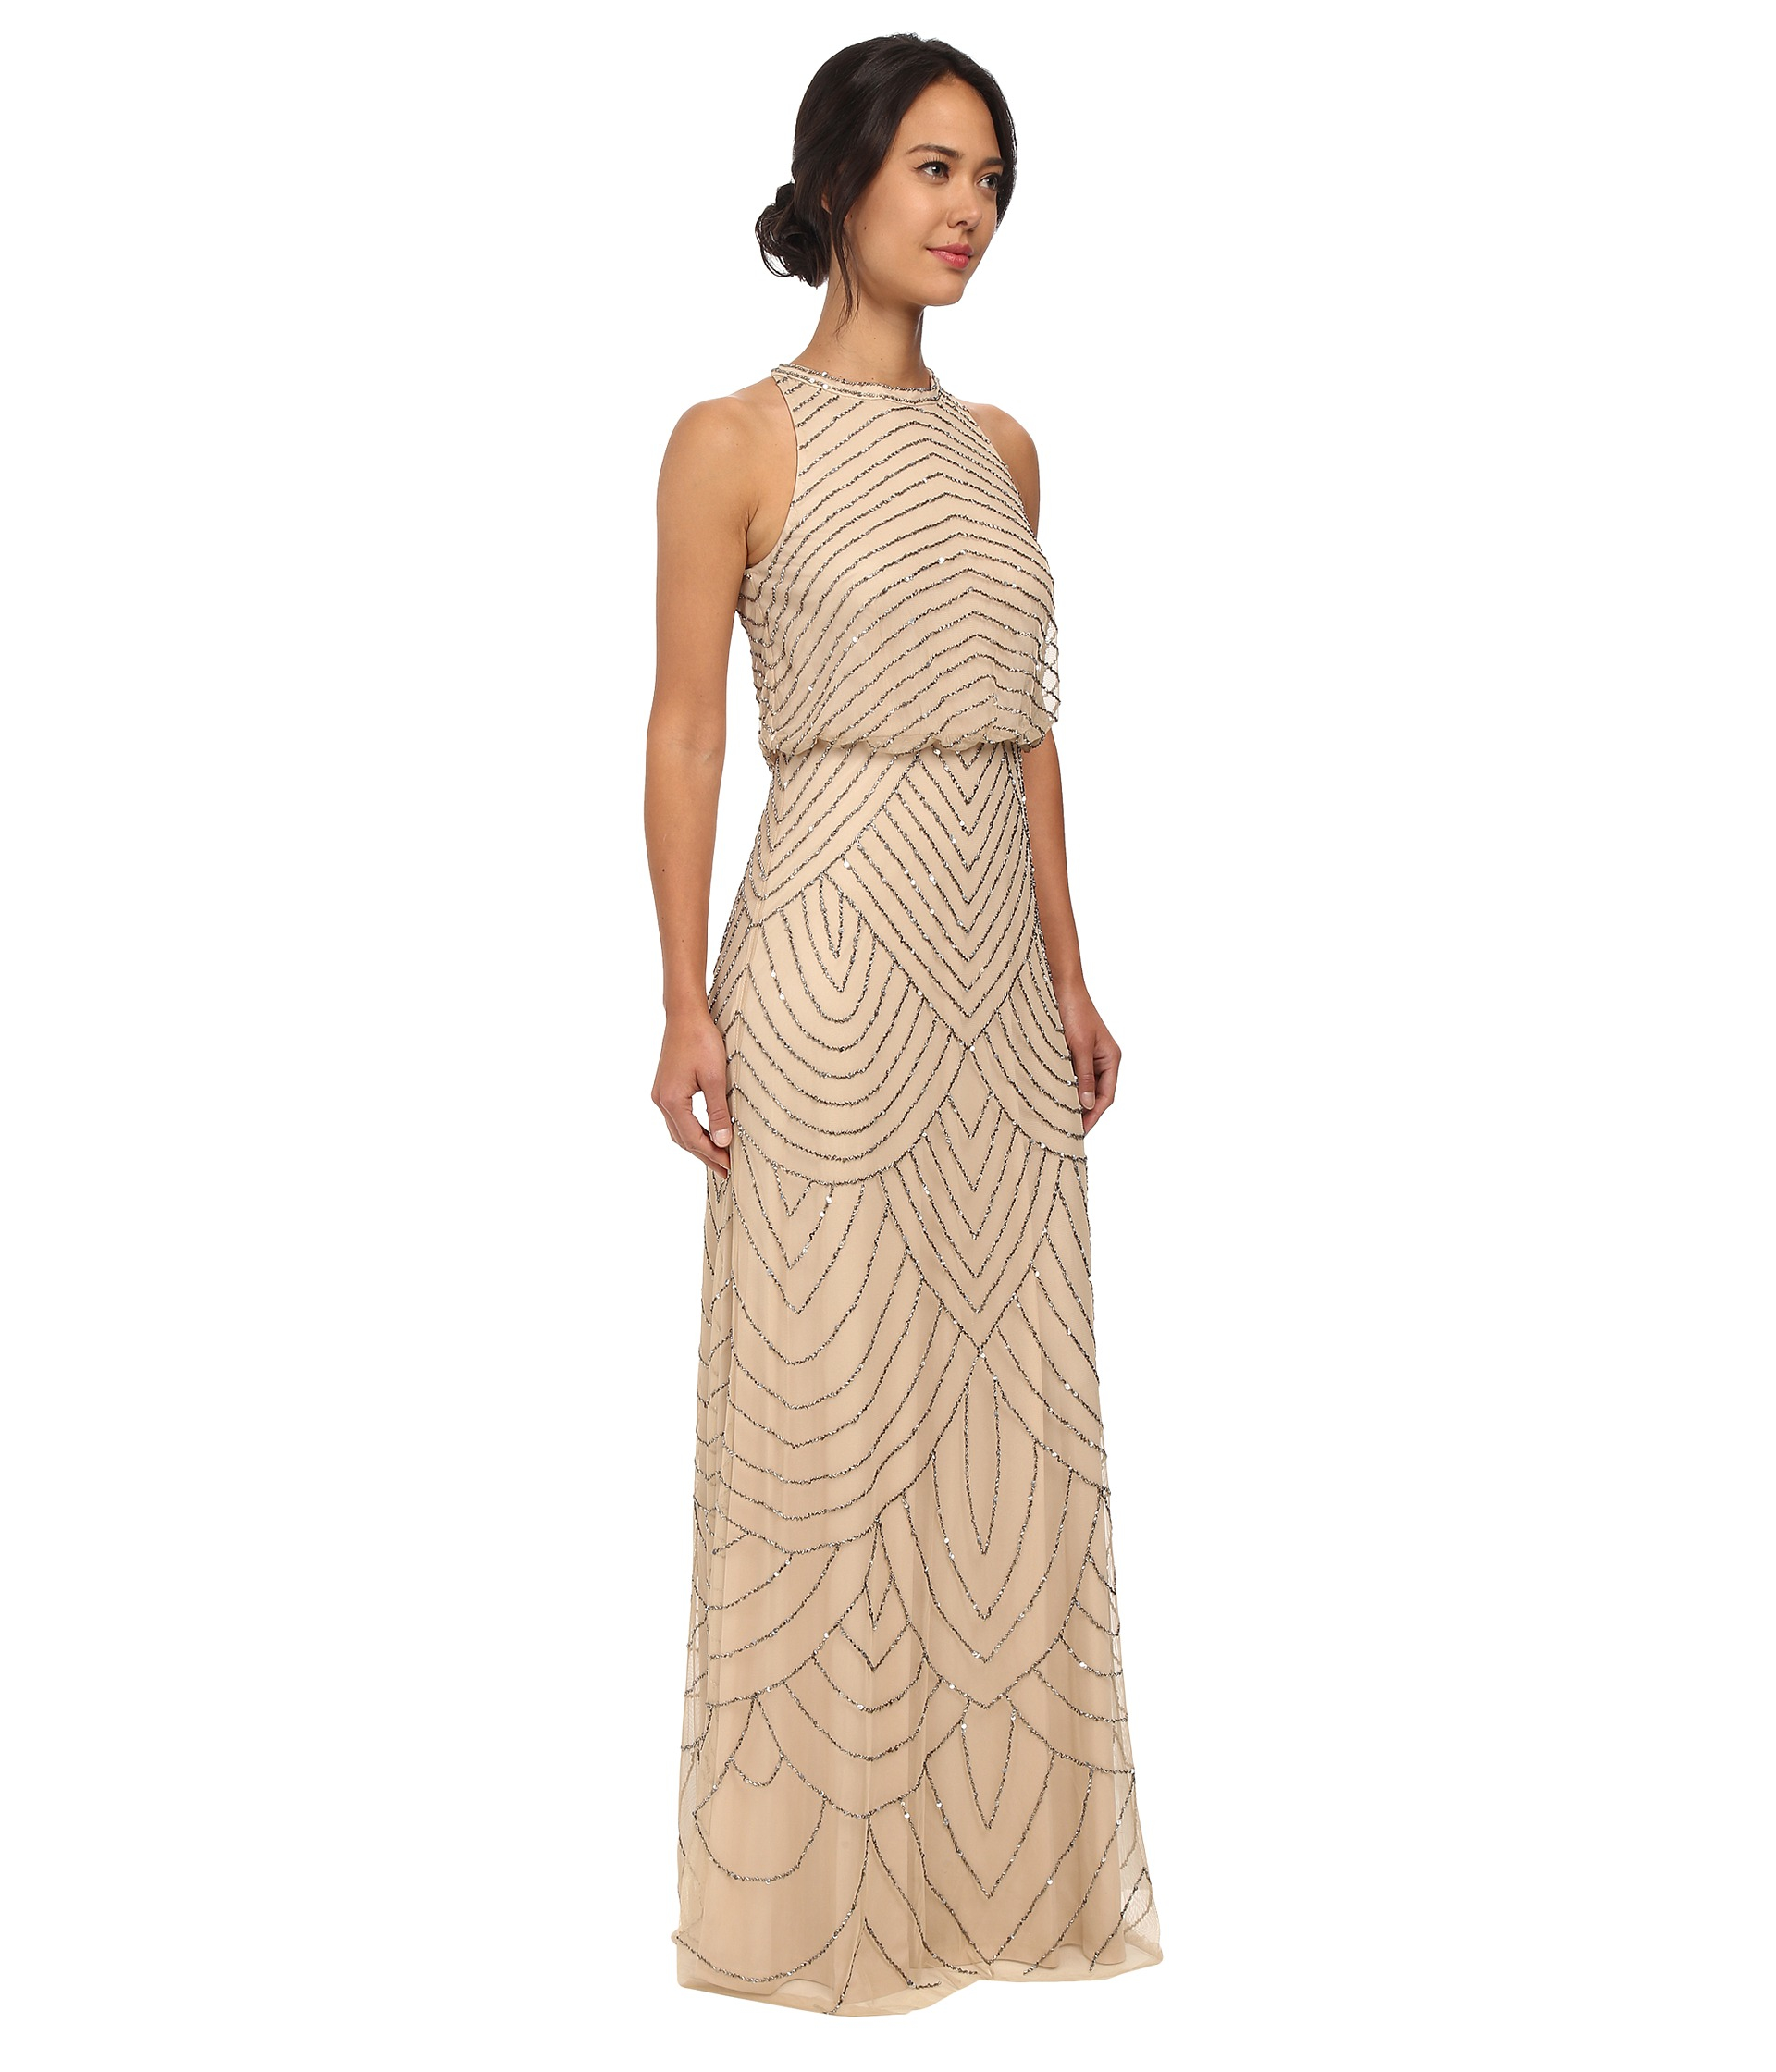 Lyst - Adrianna Papell Beaded Halter Gown in Natural